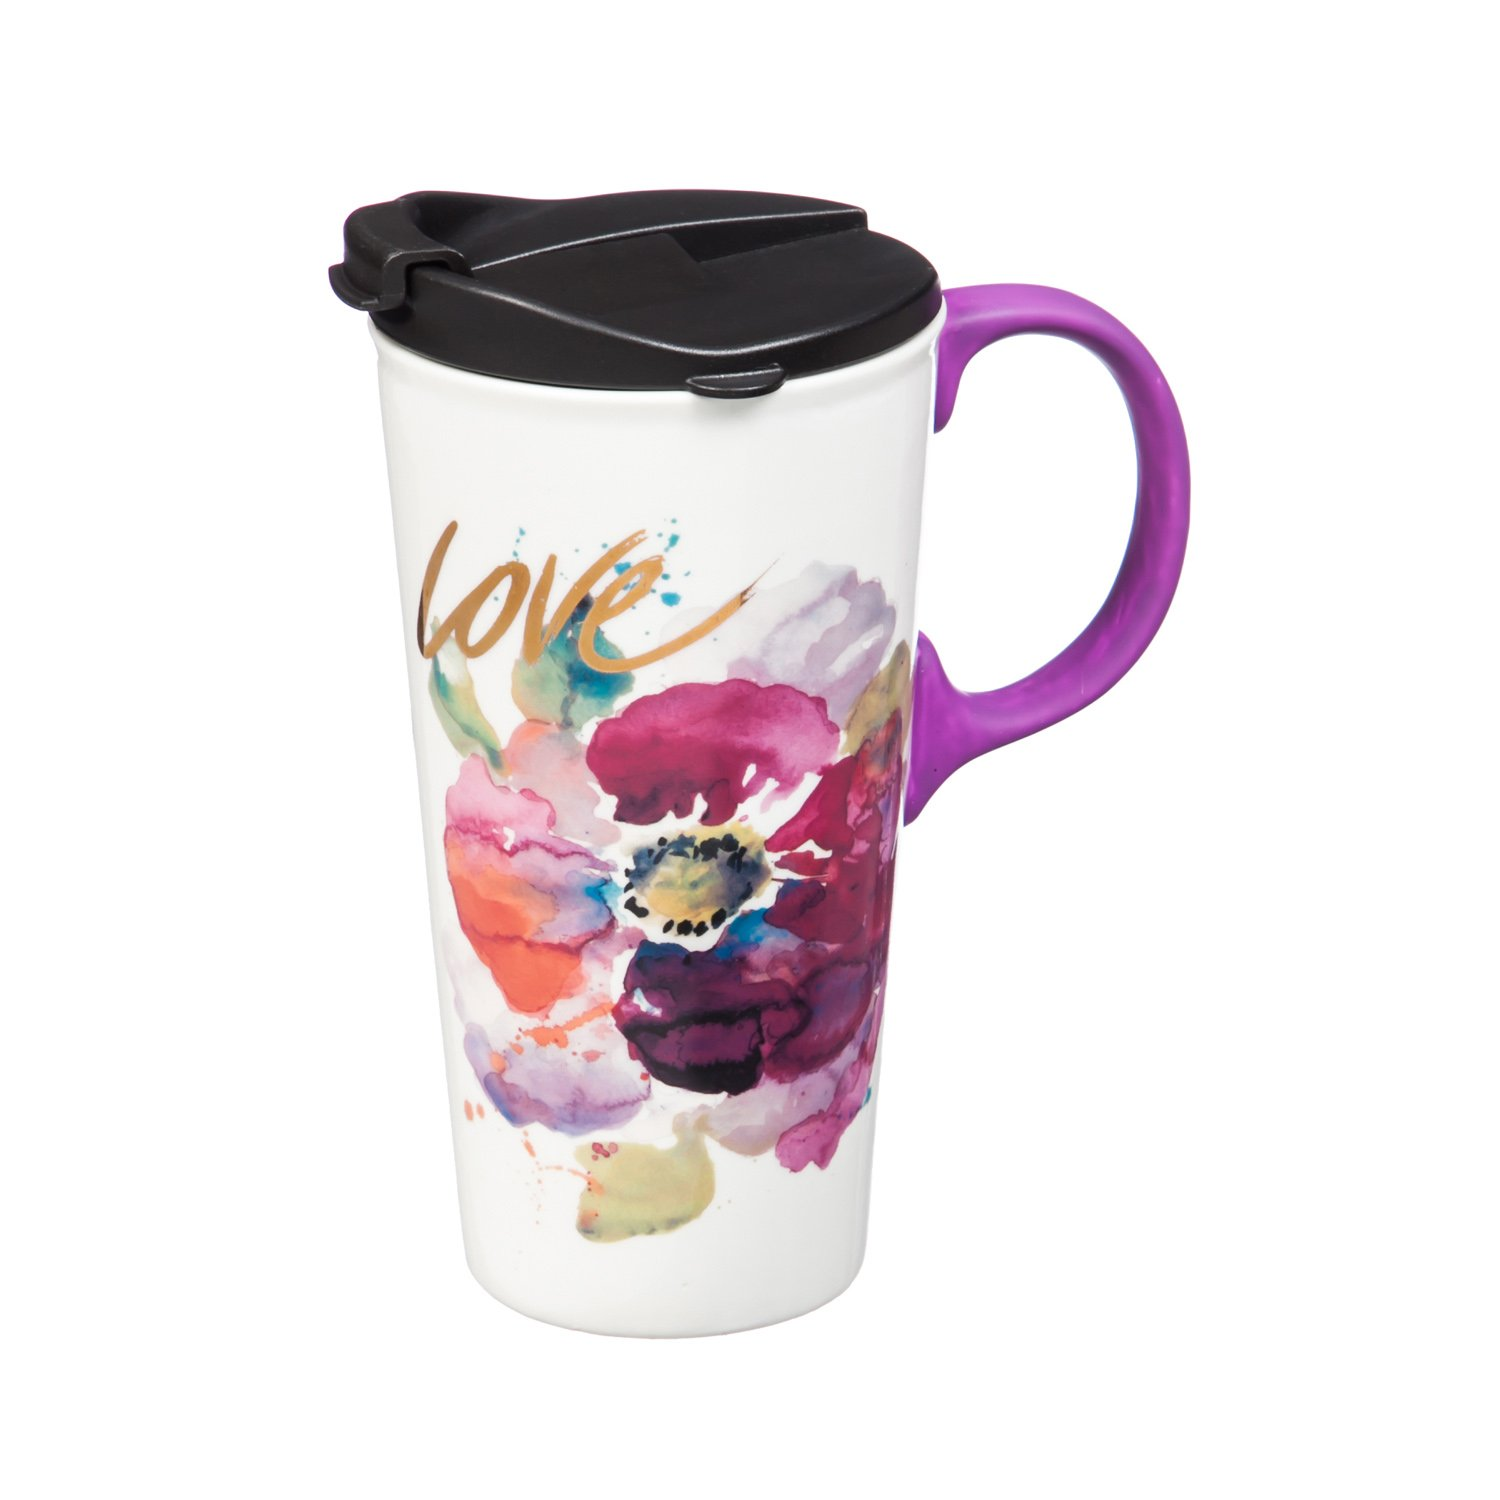 Cypress Home Love Watercolor Floral Ceramic Travel Coffee Mug with Metallic Accents and Gift Box, 17 ounces